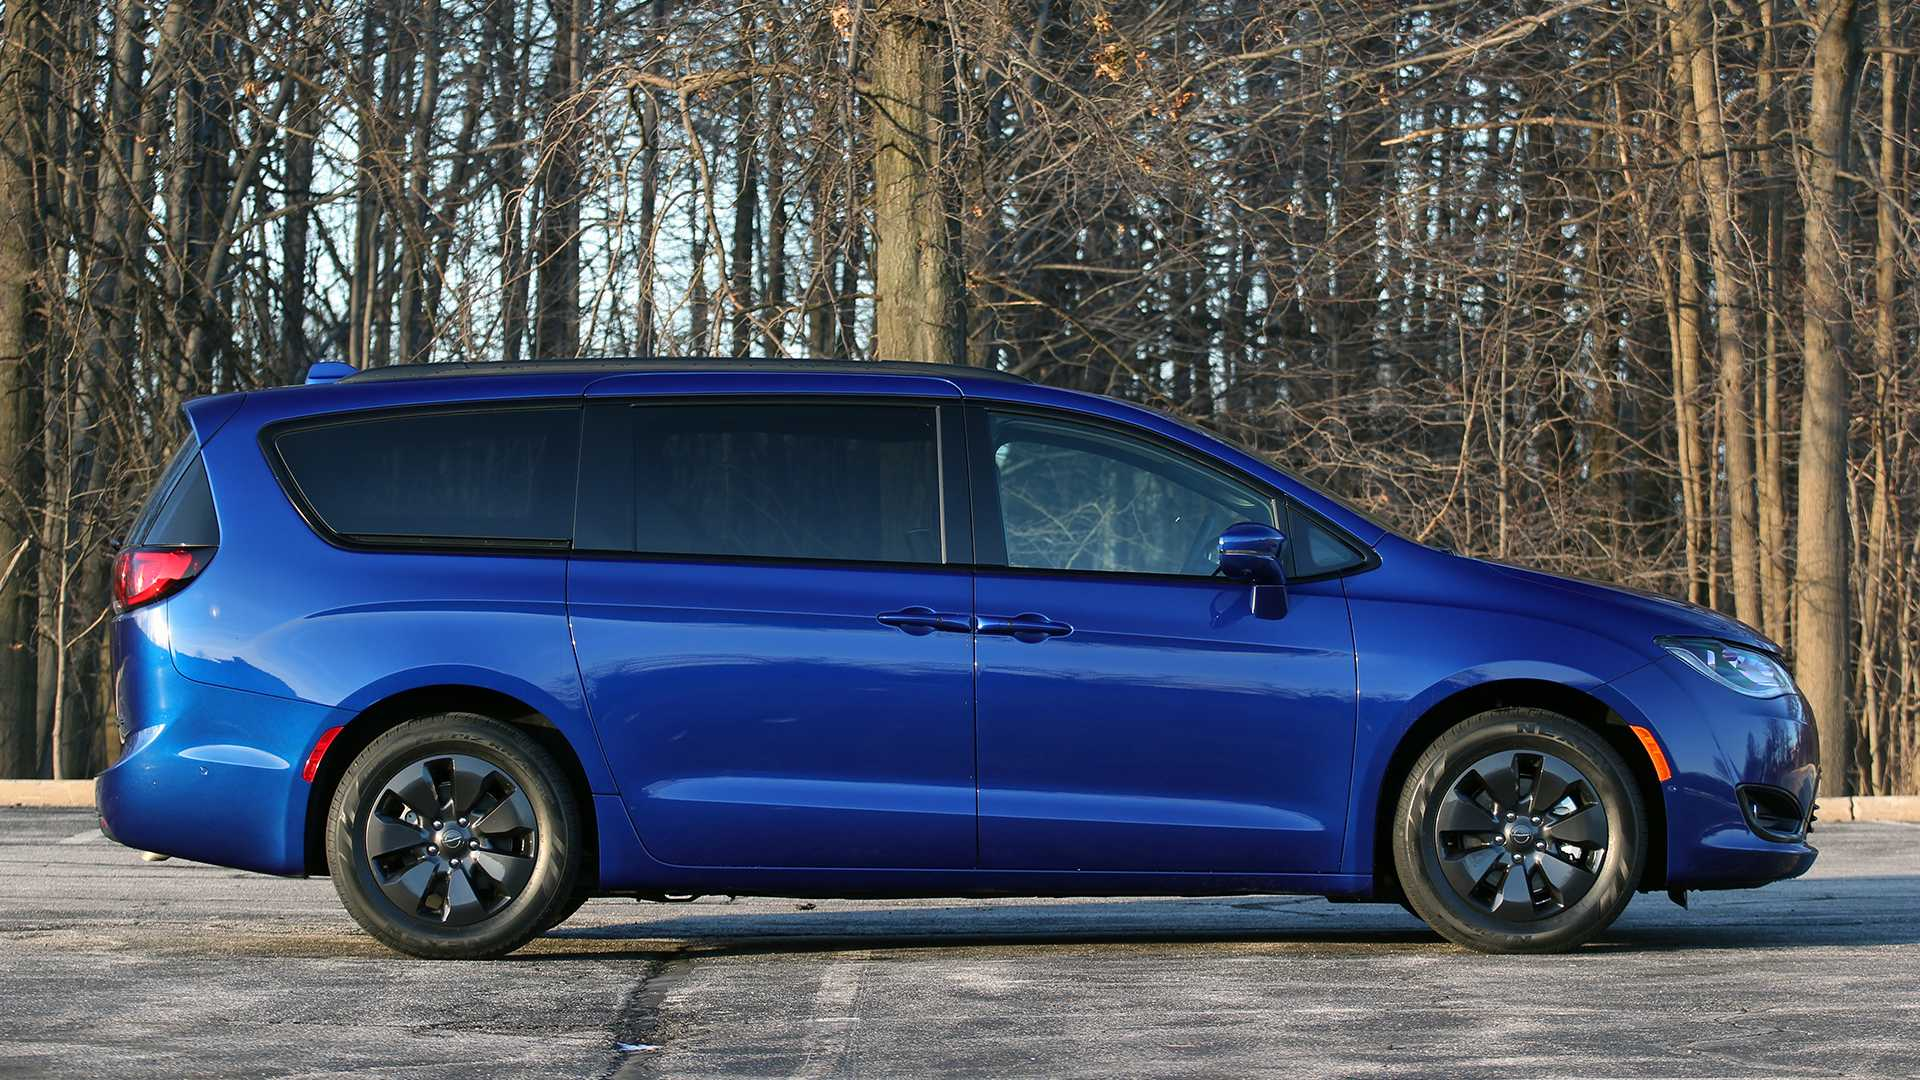 53 A 2019 Chrysler Pacifica Review Review